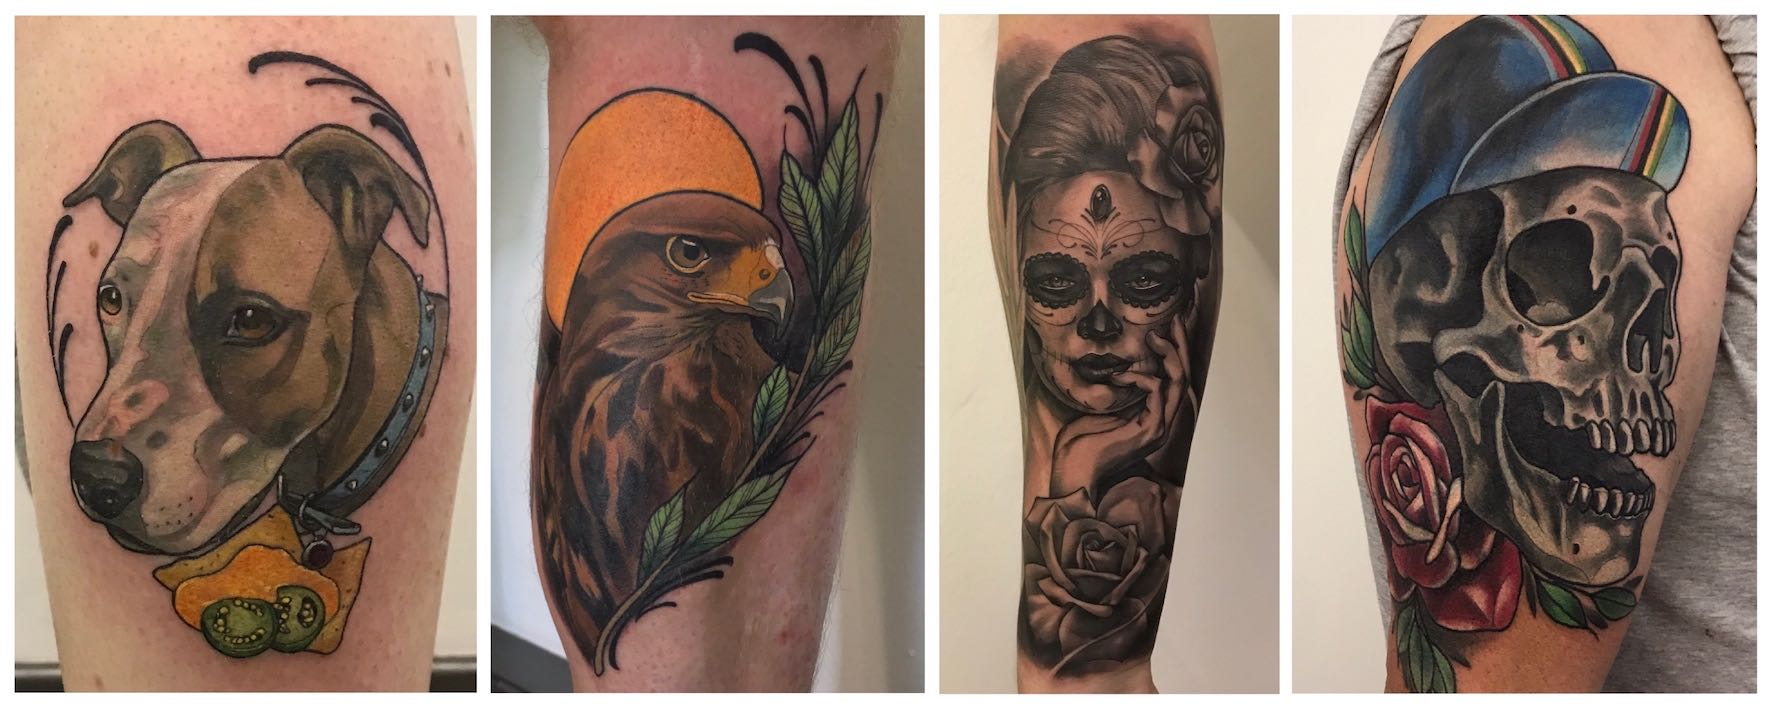 Tattoos done by Ronald Jacobs